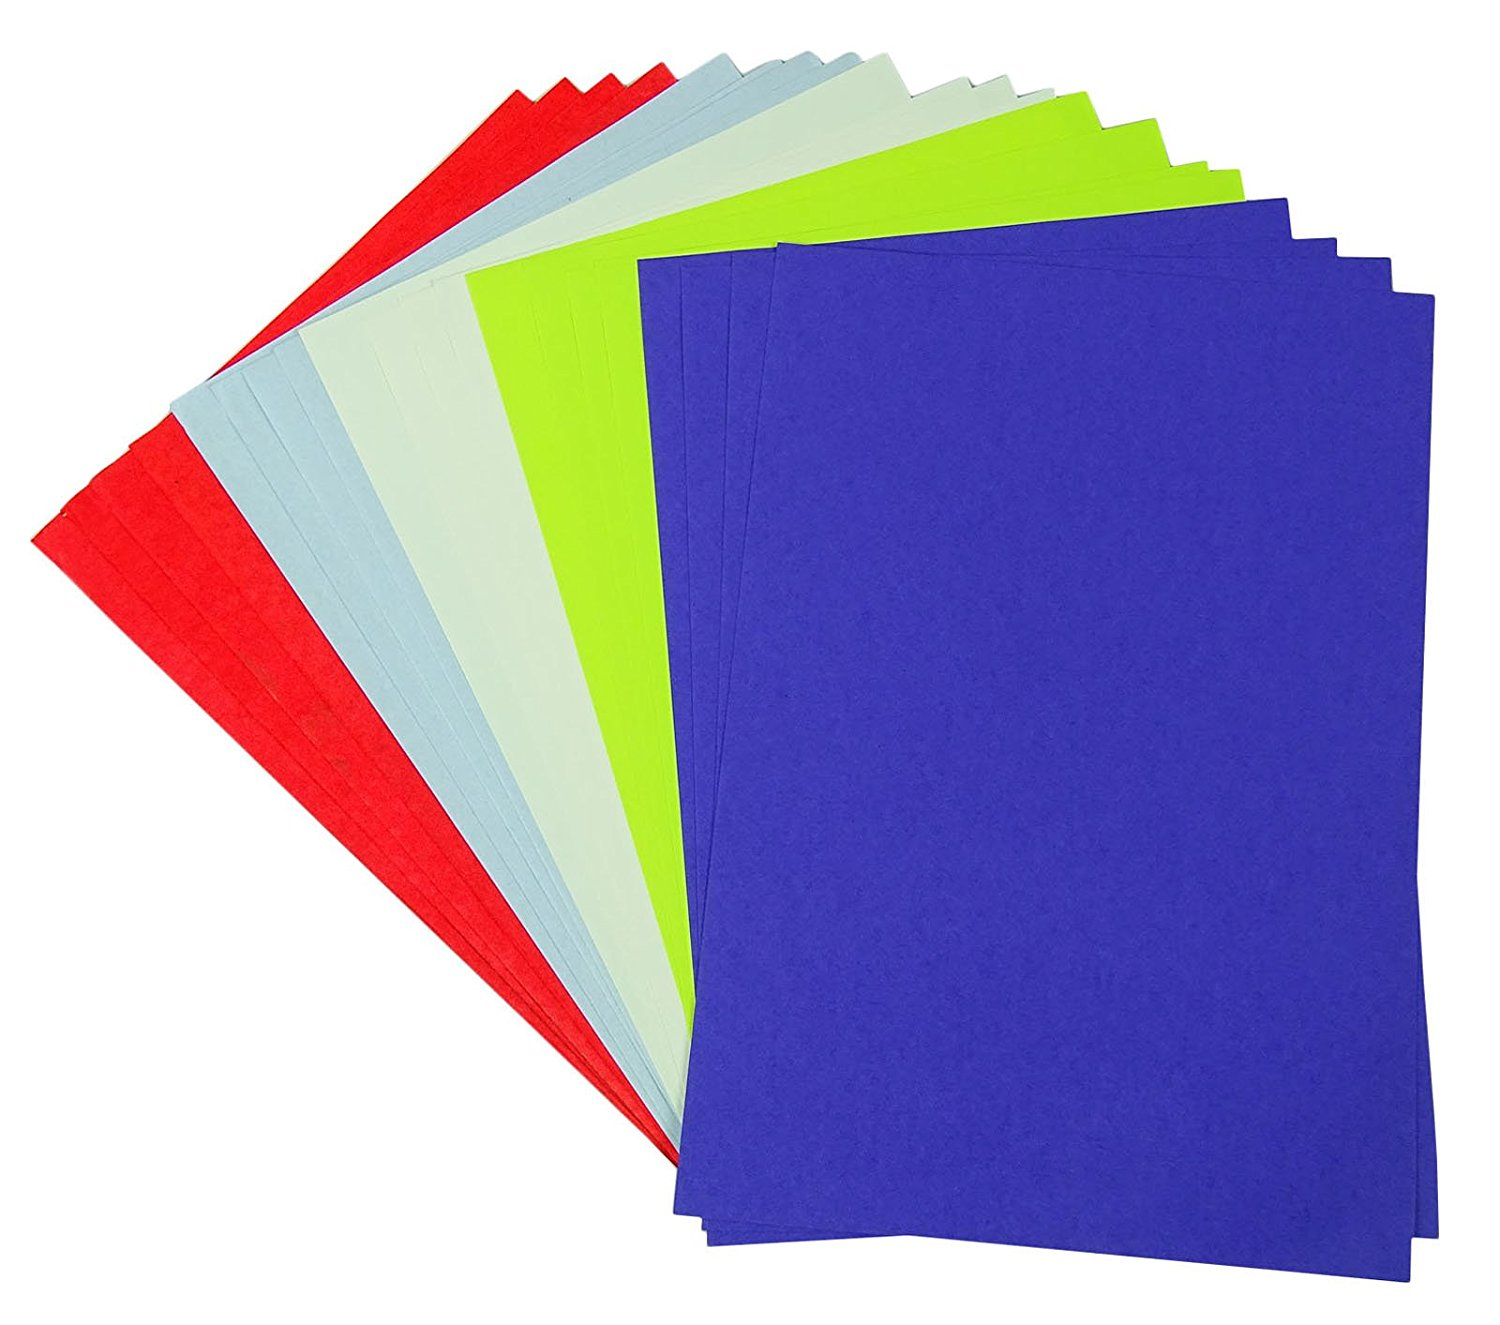 paper deals Paper deals save with deals on paper, cardstock and envelopes save today on these deals and sale items, top quality repeatable products available at today's special price.